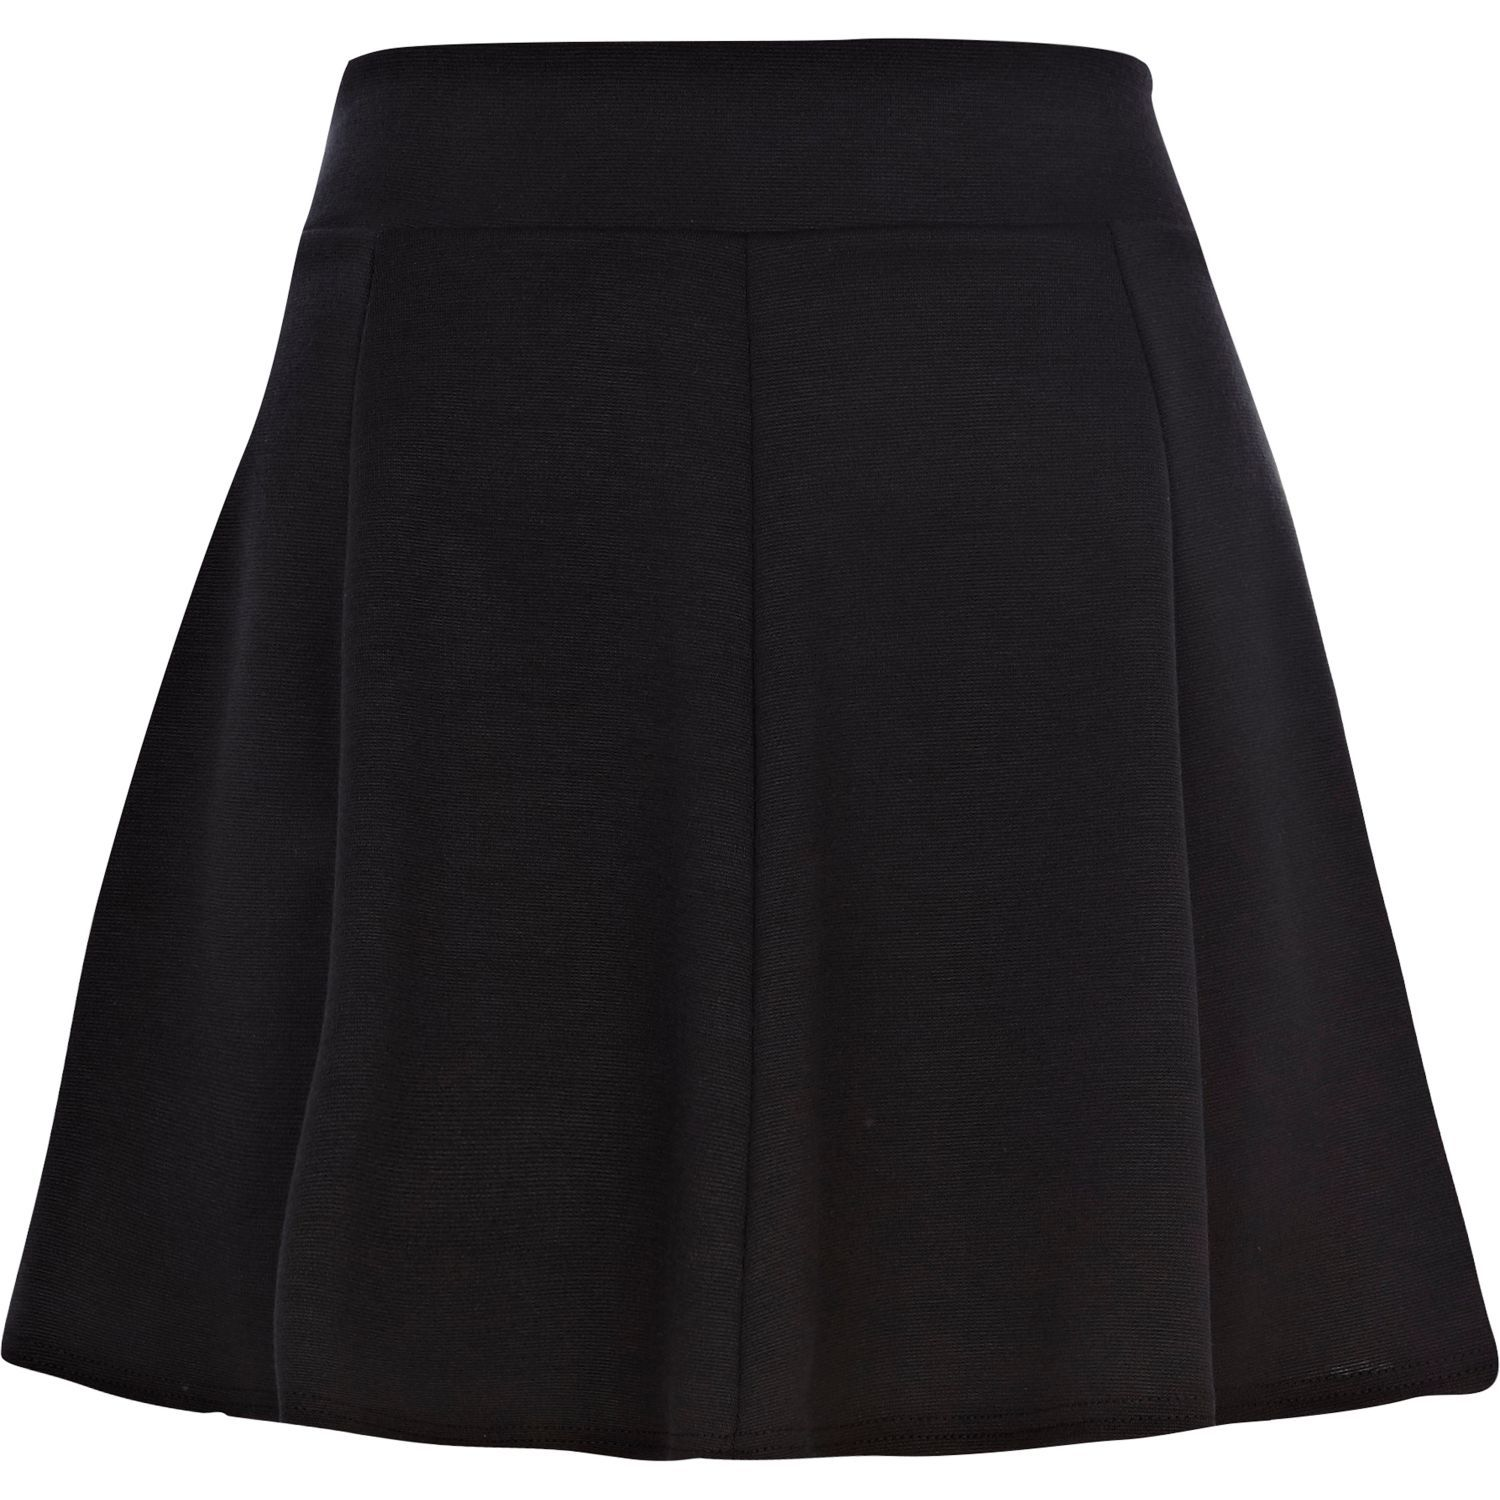 Ritual Clothing Stores Of Modern Skirts in 2019 Skirts